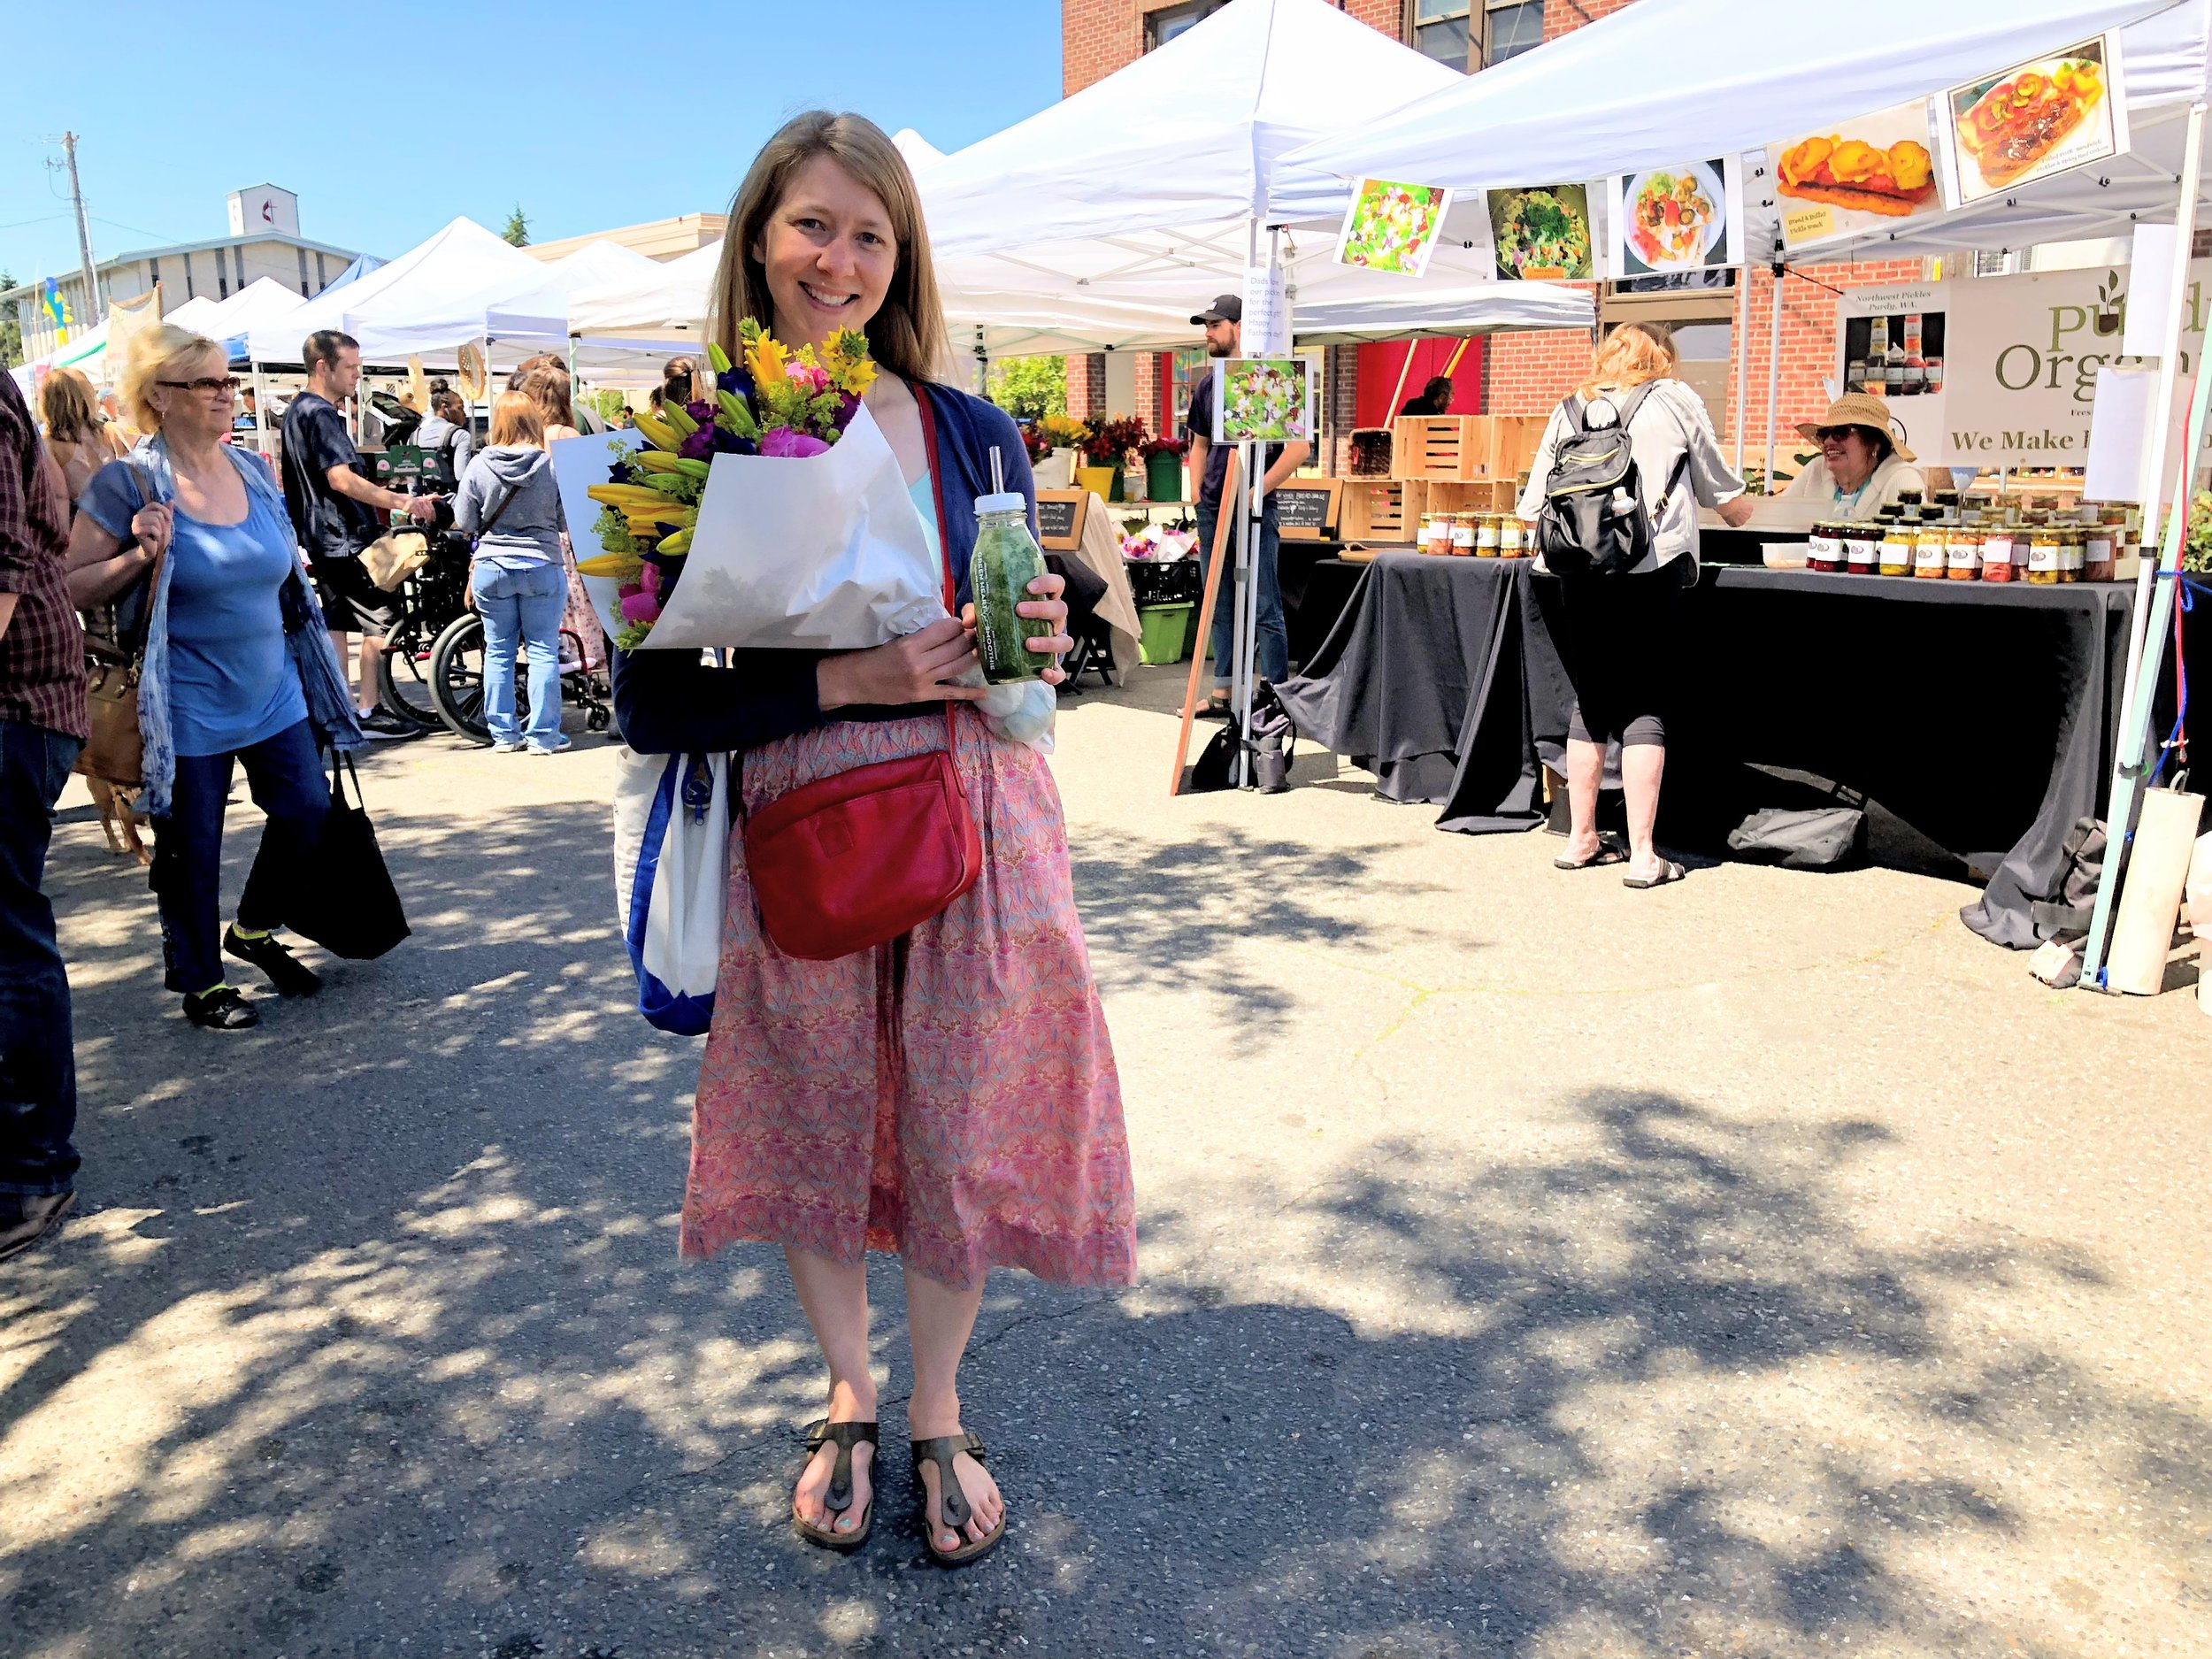 A hands-arms-and-bag-ful kind of day at the Proctor Farmers' Market. Thanks to a sweet stranger for snapping this photo!